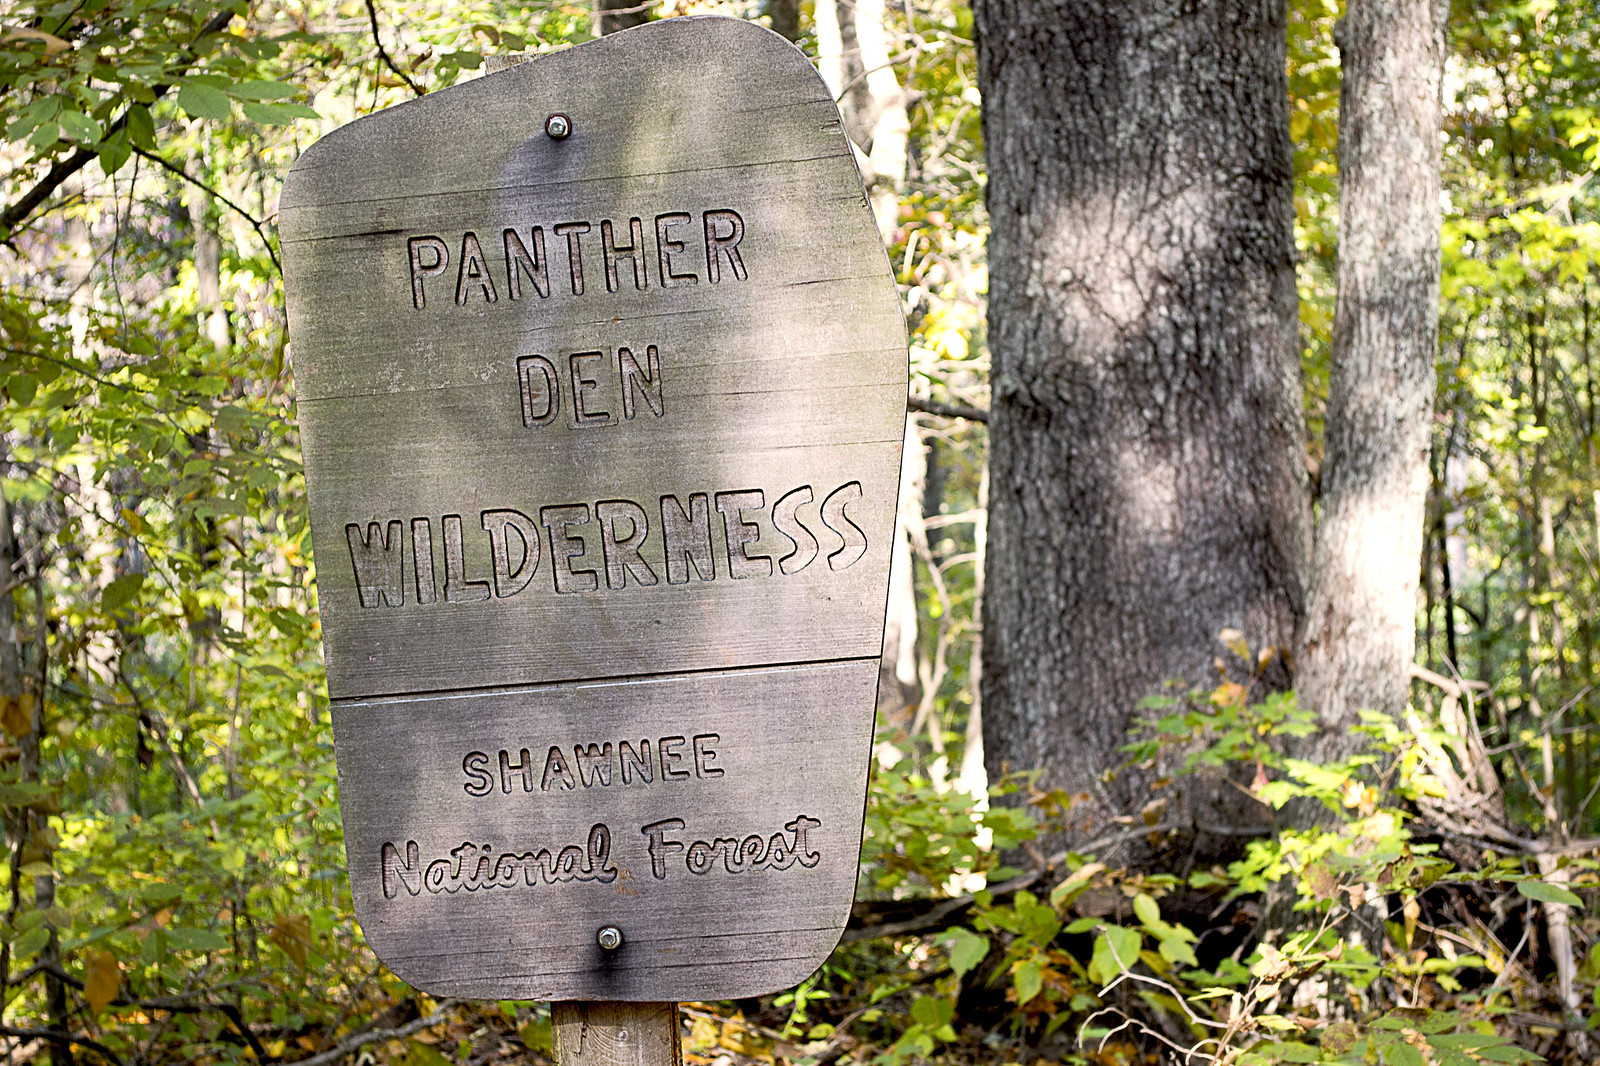 Local Treks: Panther Den Wilderness Boundry Sign